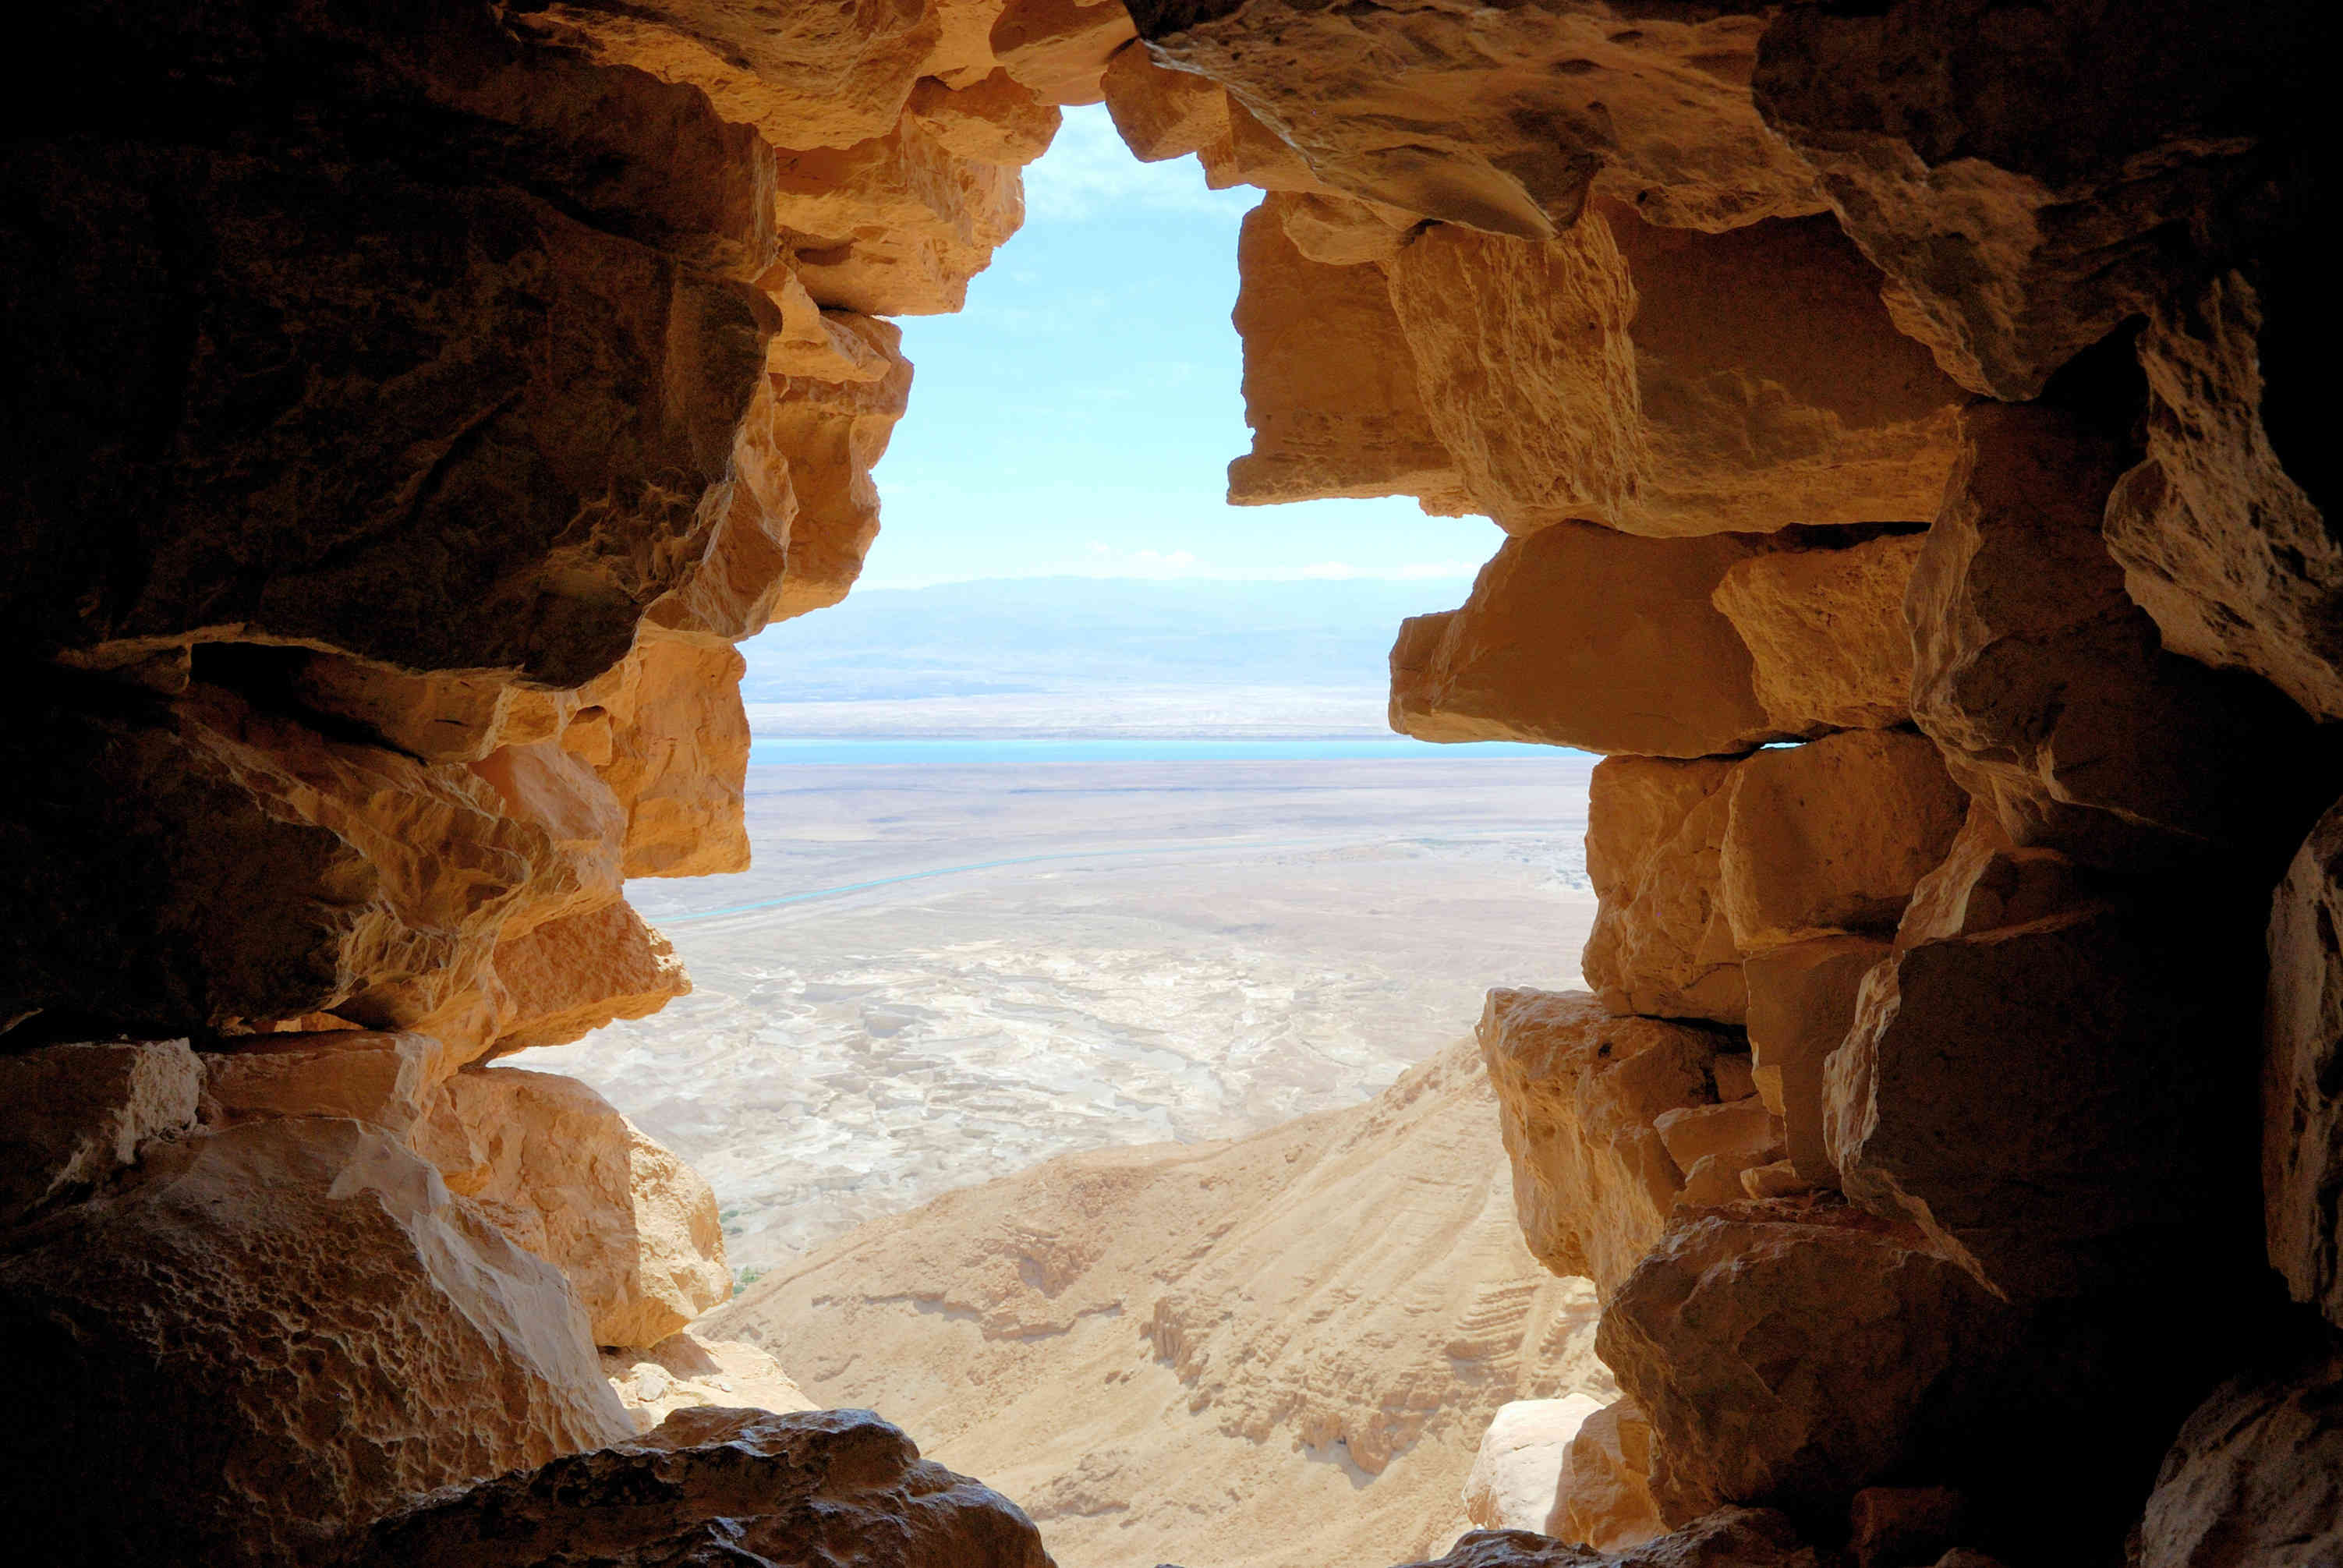 Dead Sea as Seen from Masada